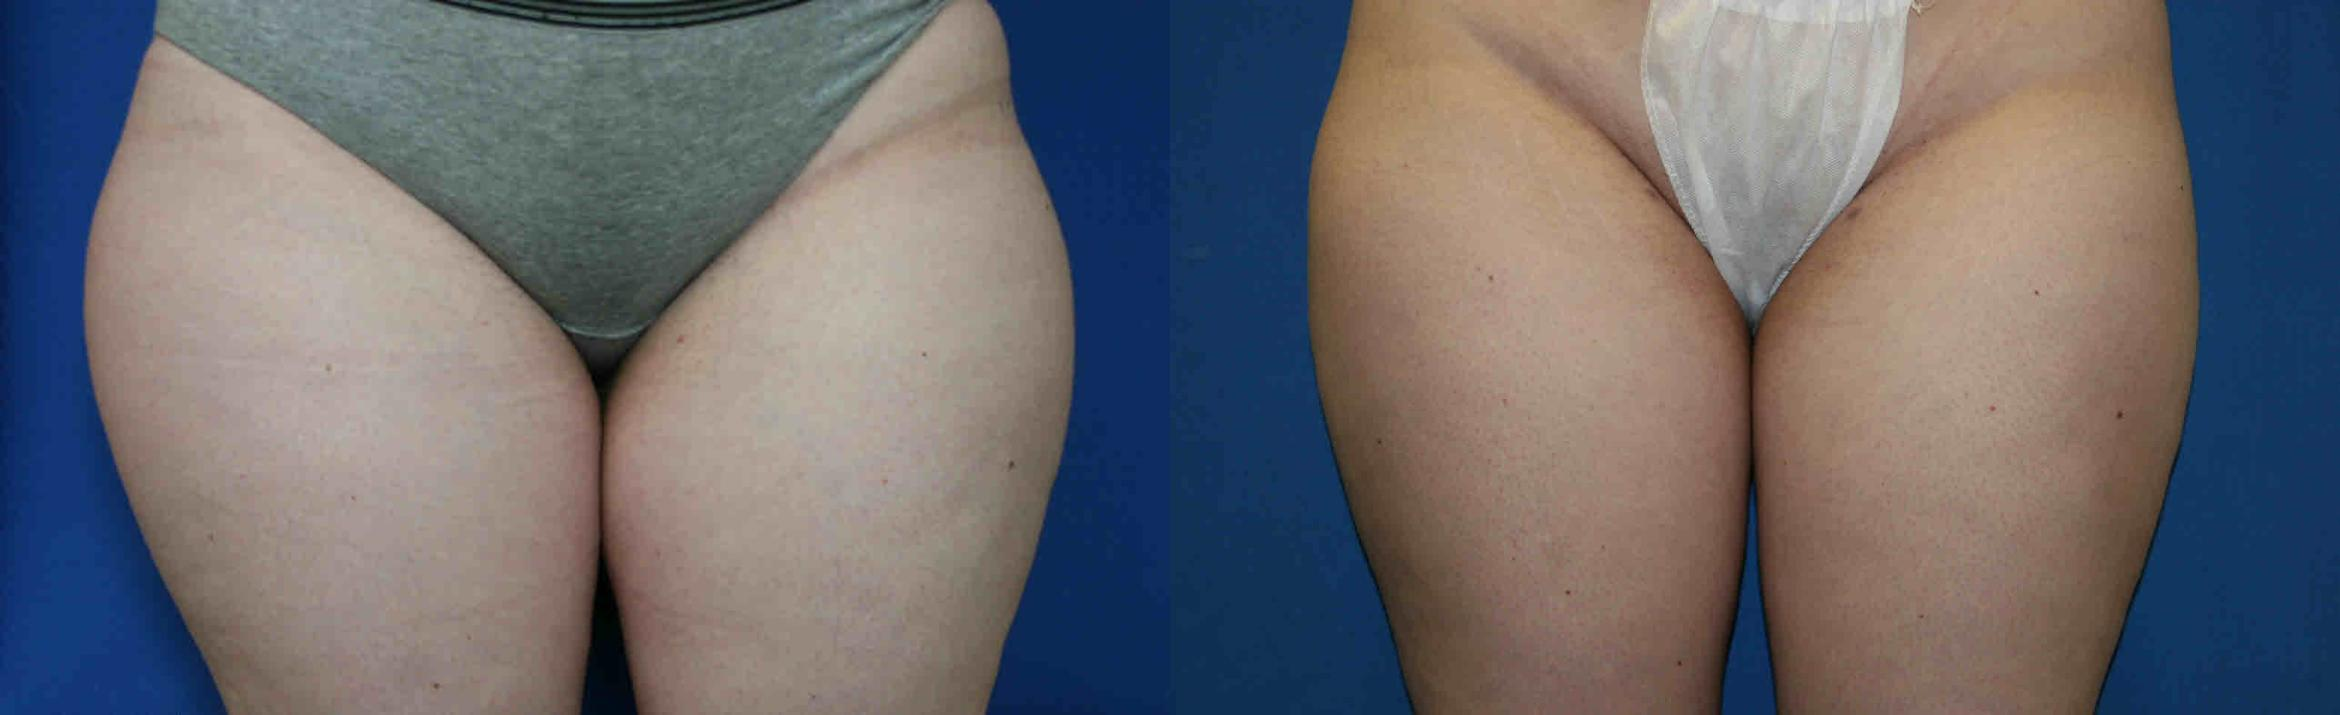 Liposuction Case 31 Before & After View #1 | San Jose & Palo Alto, CA | Daryl K. Hoffman, MD